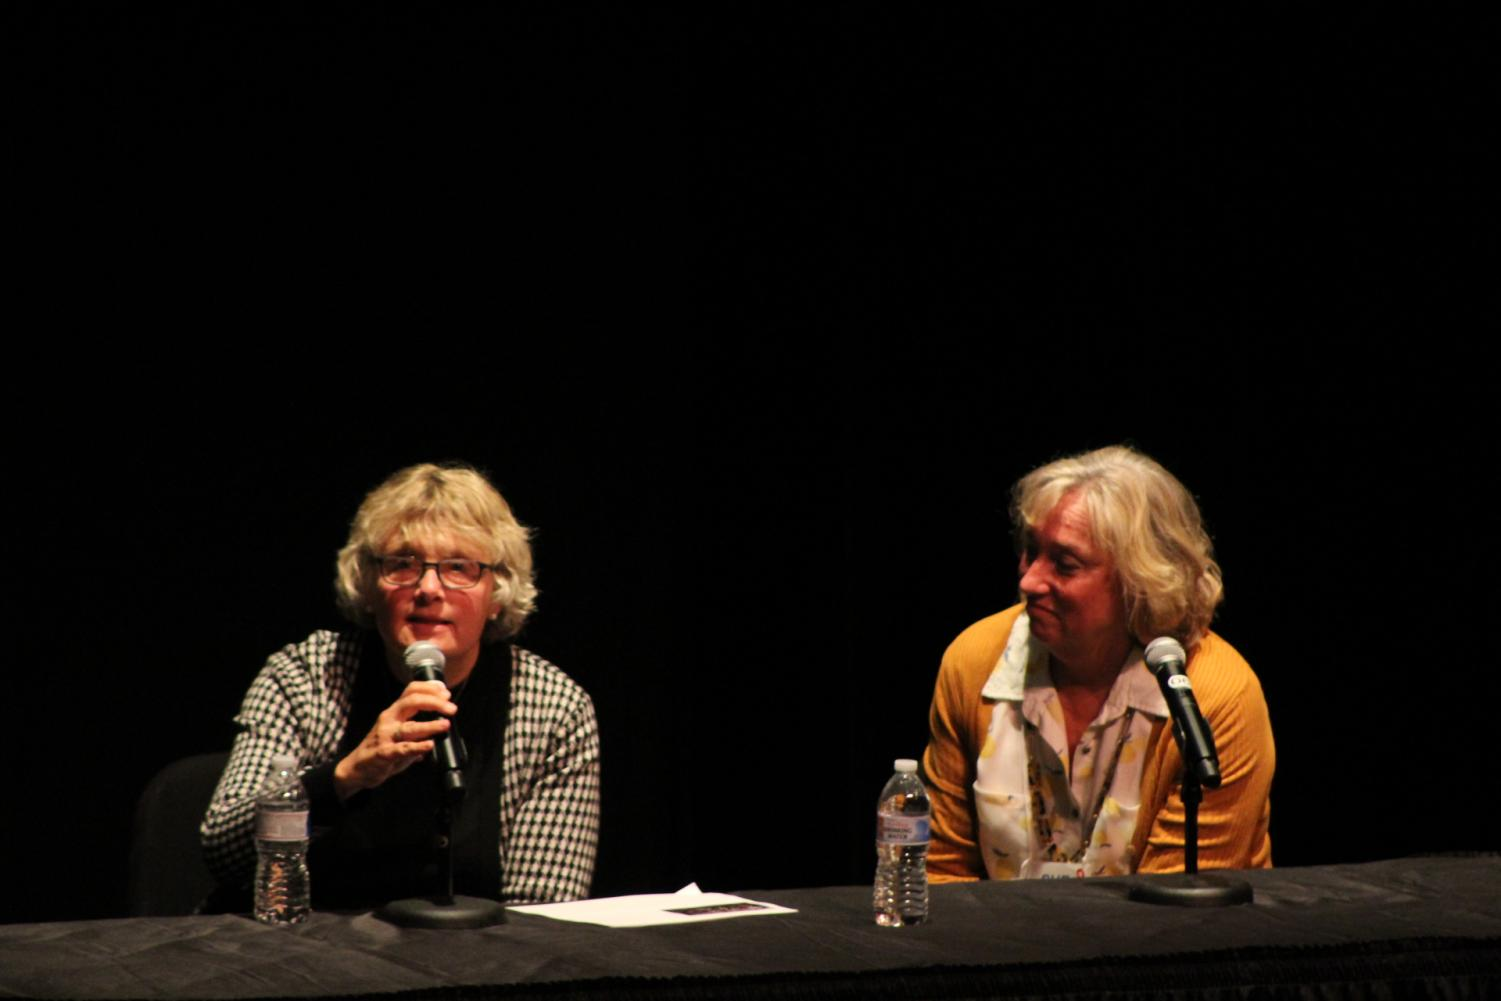 Dr. Charlene Gaebler-Uhling (left) and Sue Martin (right) answer parents' questions at the end of the presentation.